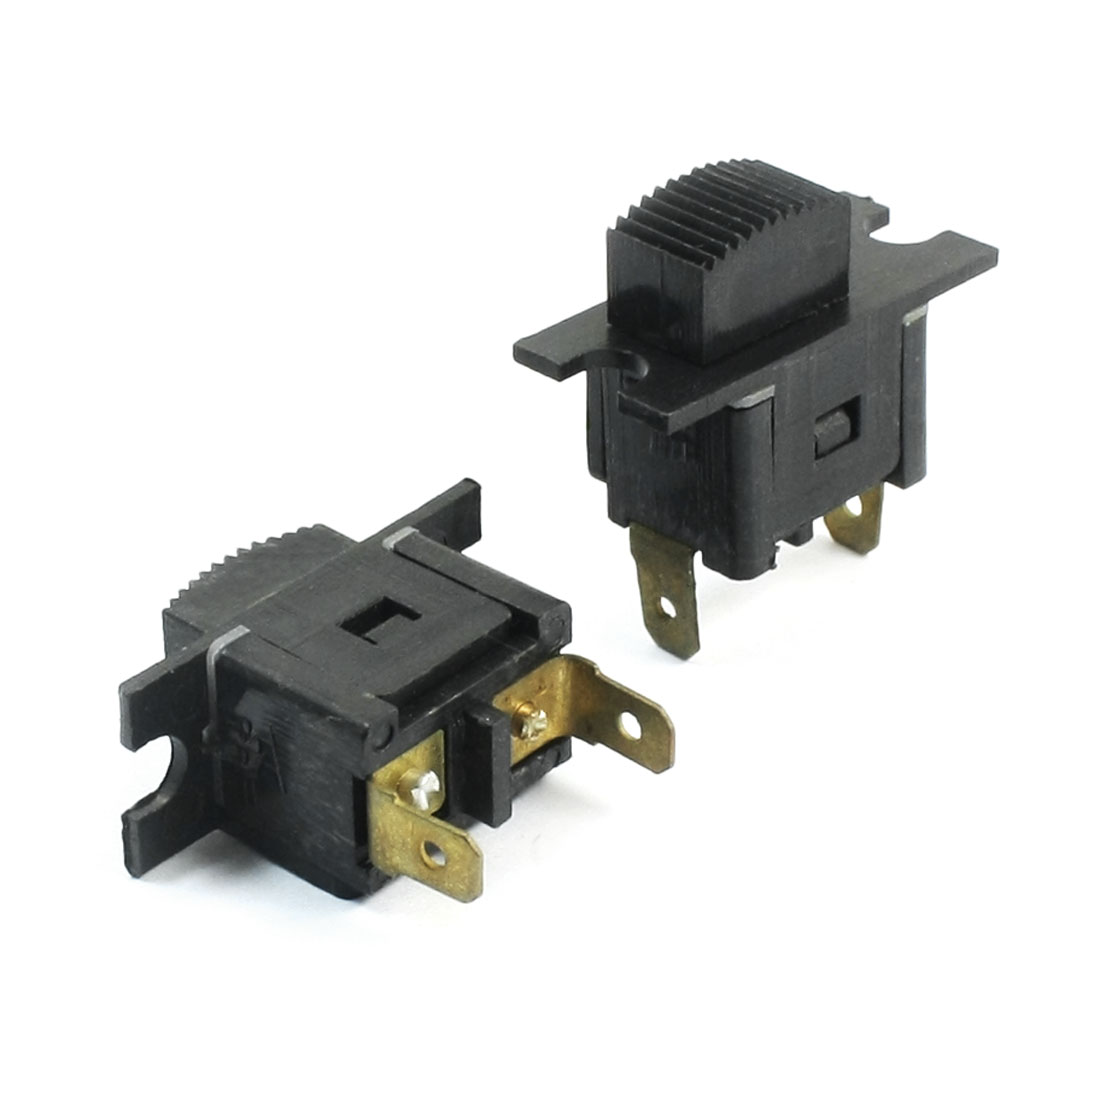 2pcs AC 250V 4A SPST Self Locking Power Switch for Makita 4510 Polish Machine